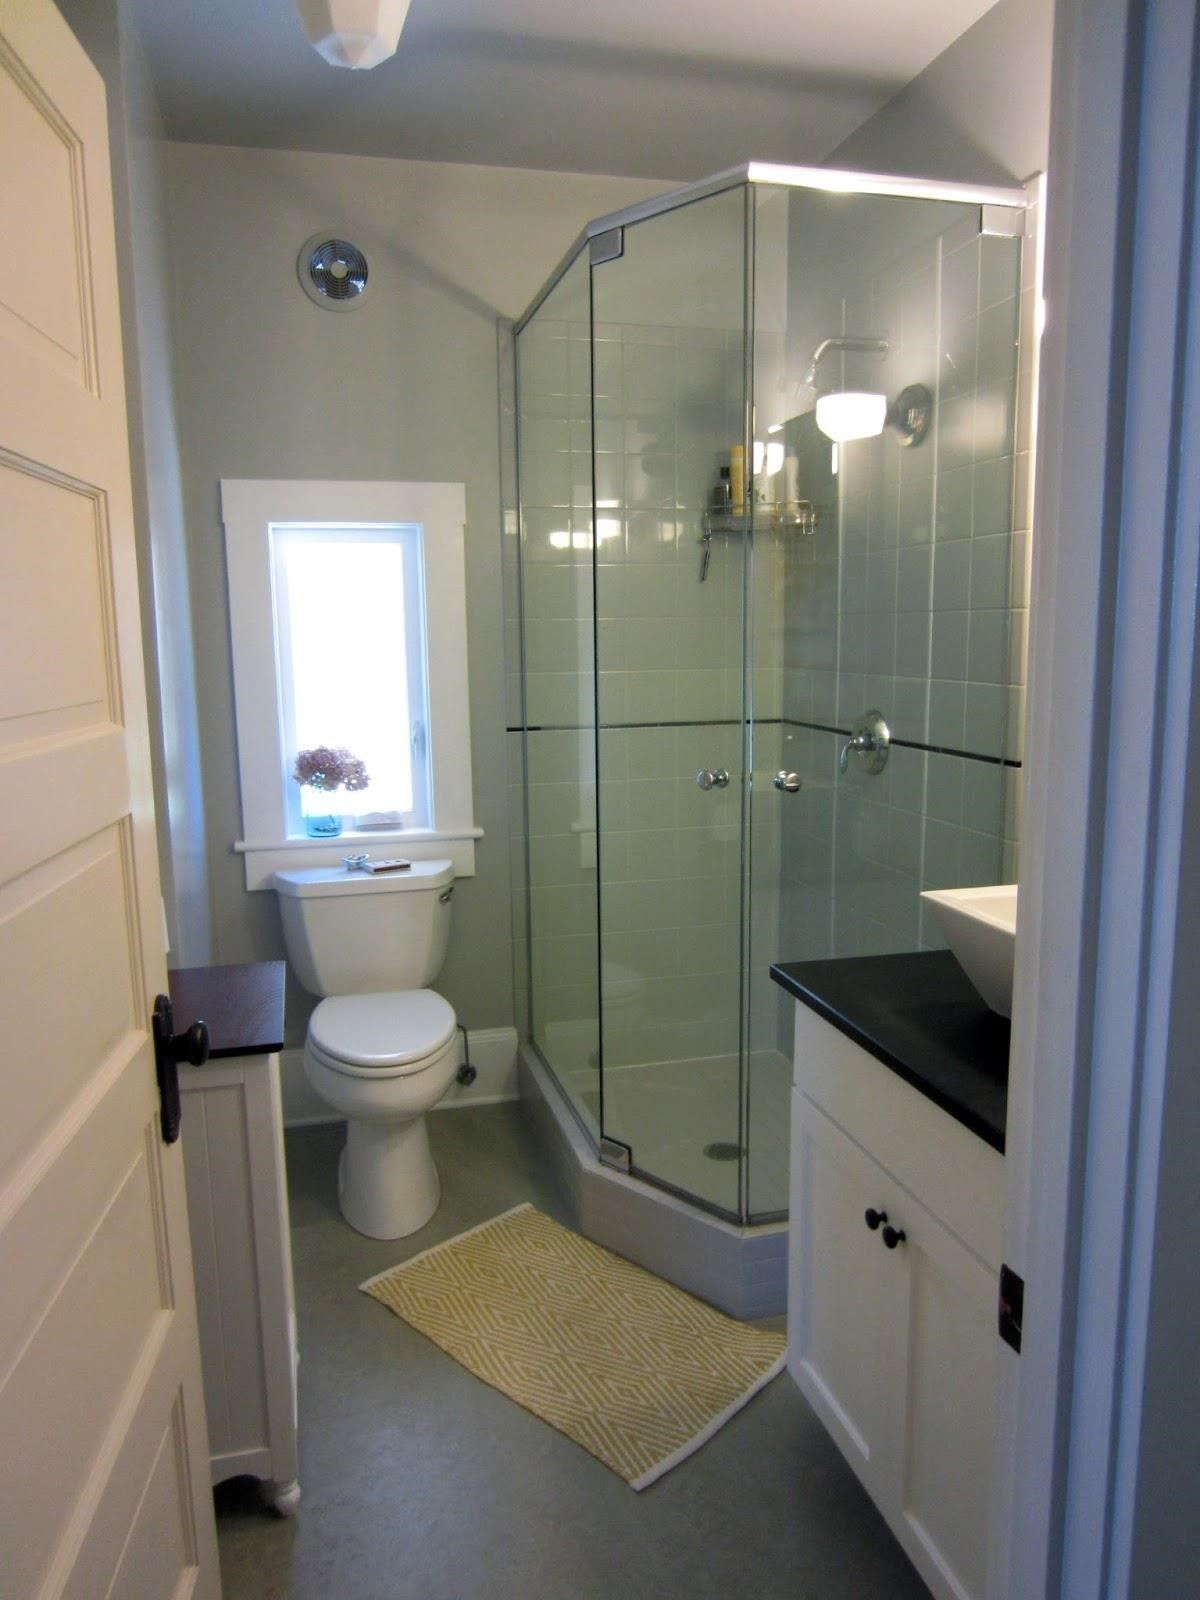 Simple Small Bathroom Ideas With Shower Only on Small ... on Small Bathroom Ideas With Shower Only id=44710